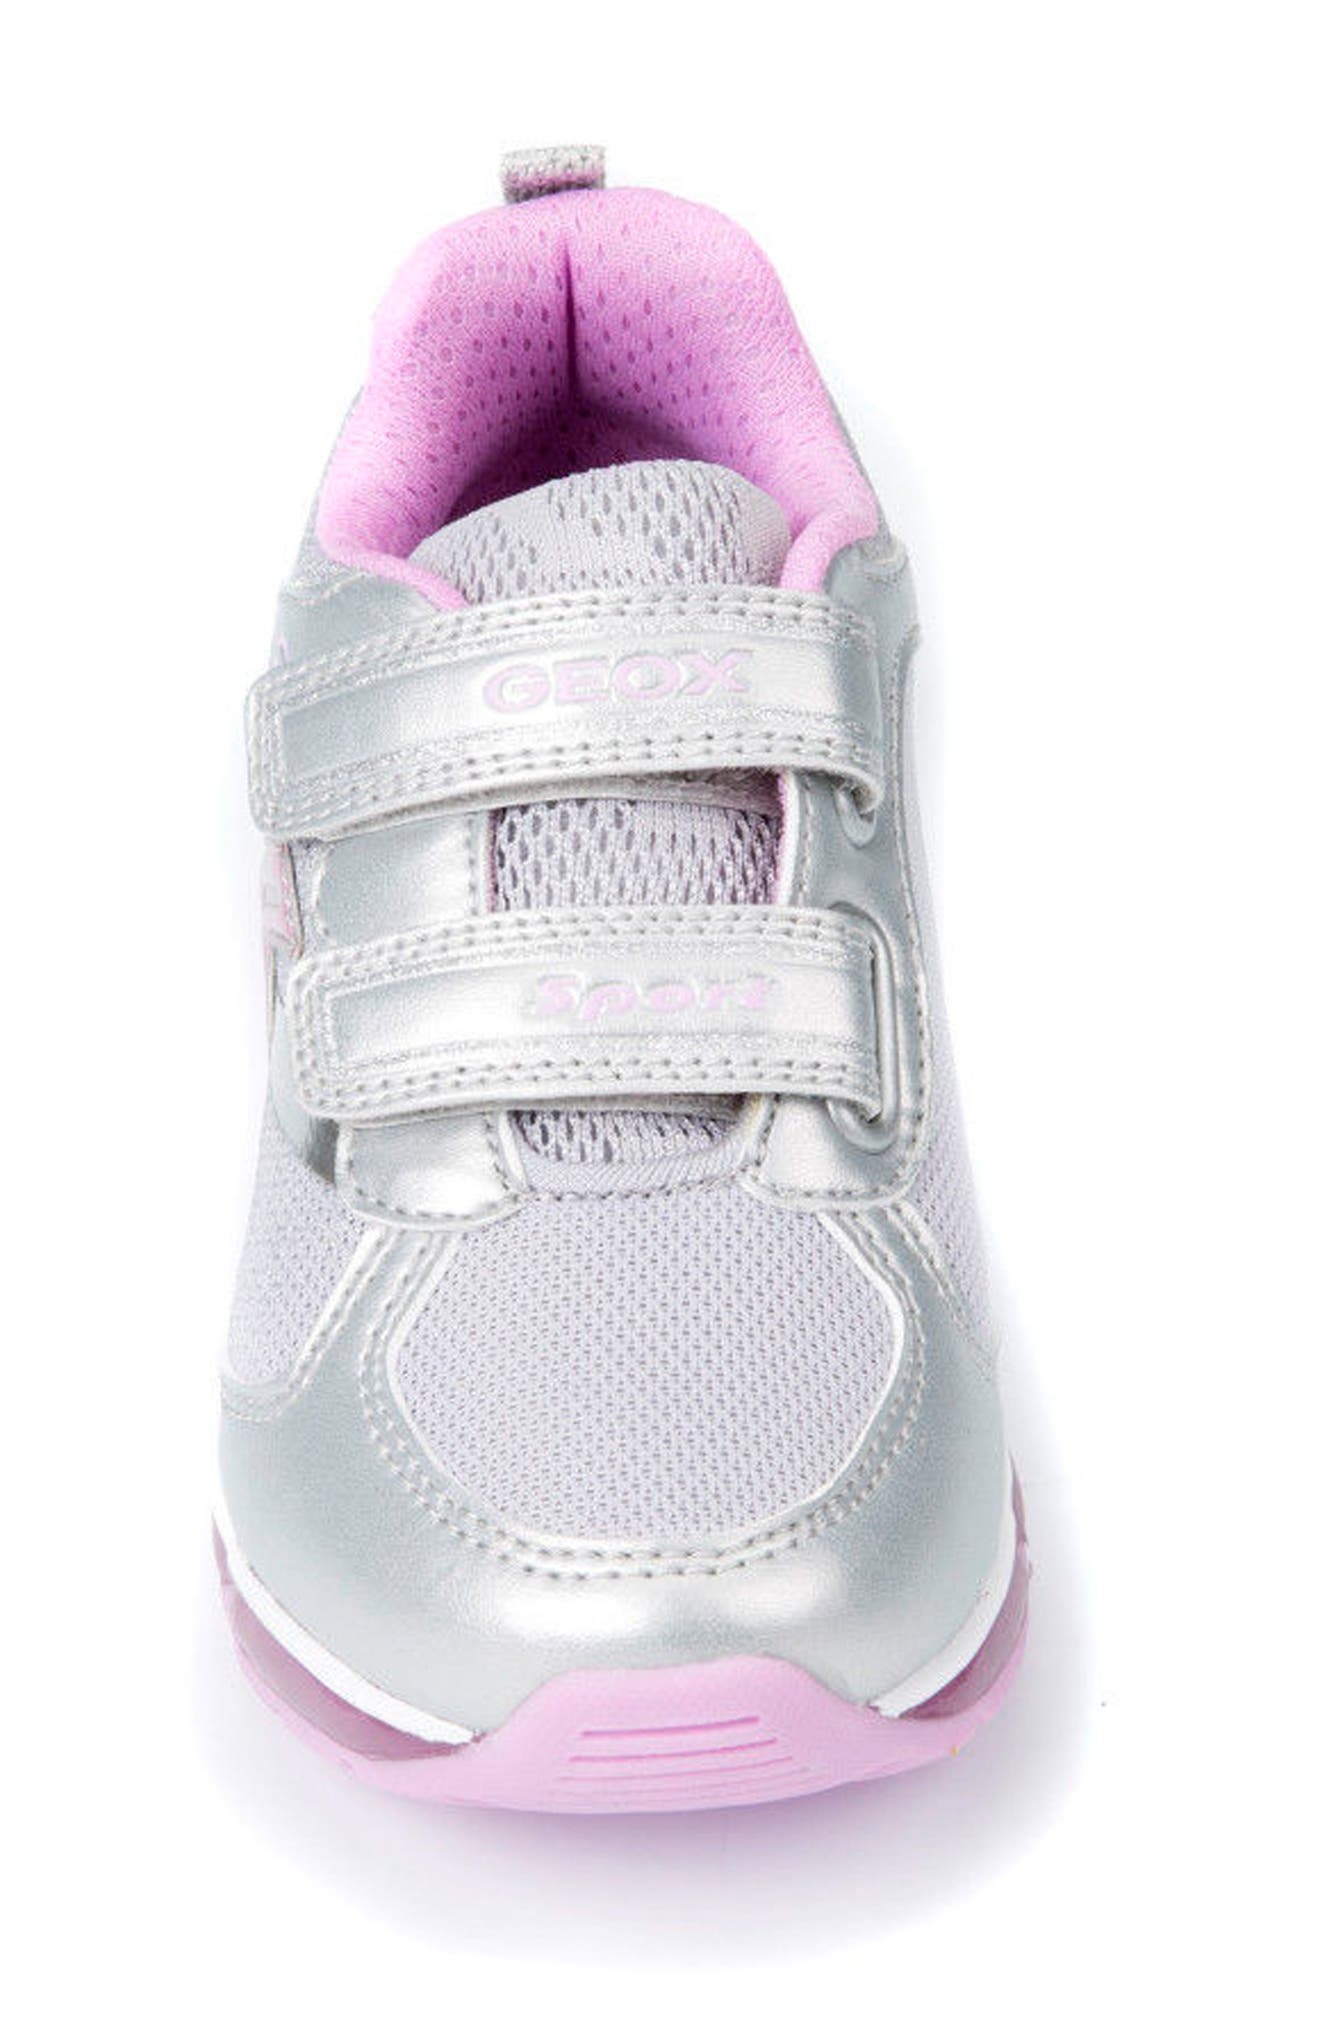 Android Light-Up Sneaker,                             Alternate thumbnail 4, color,                             SILVER/ PINK